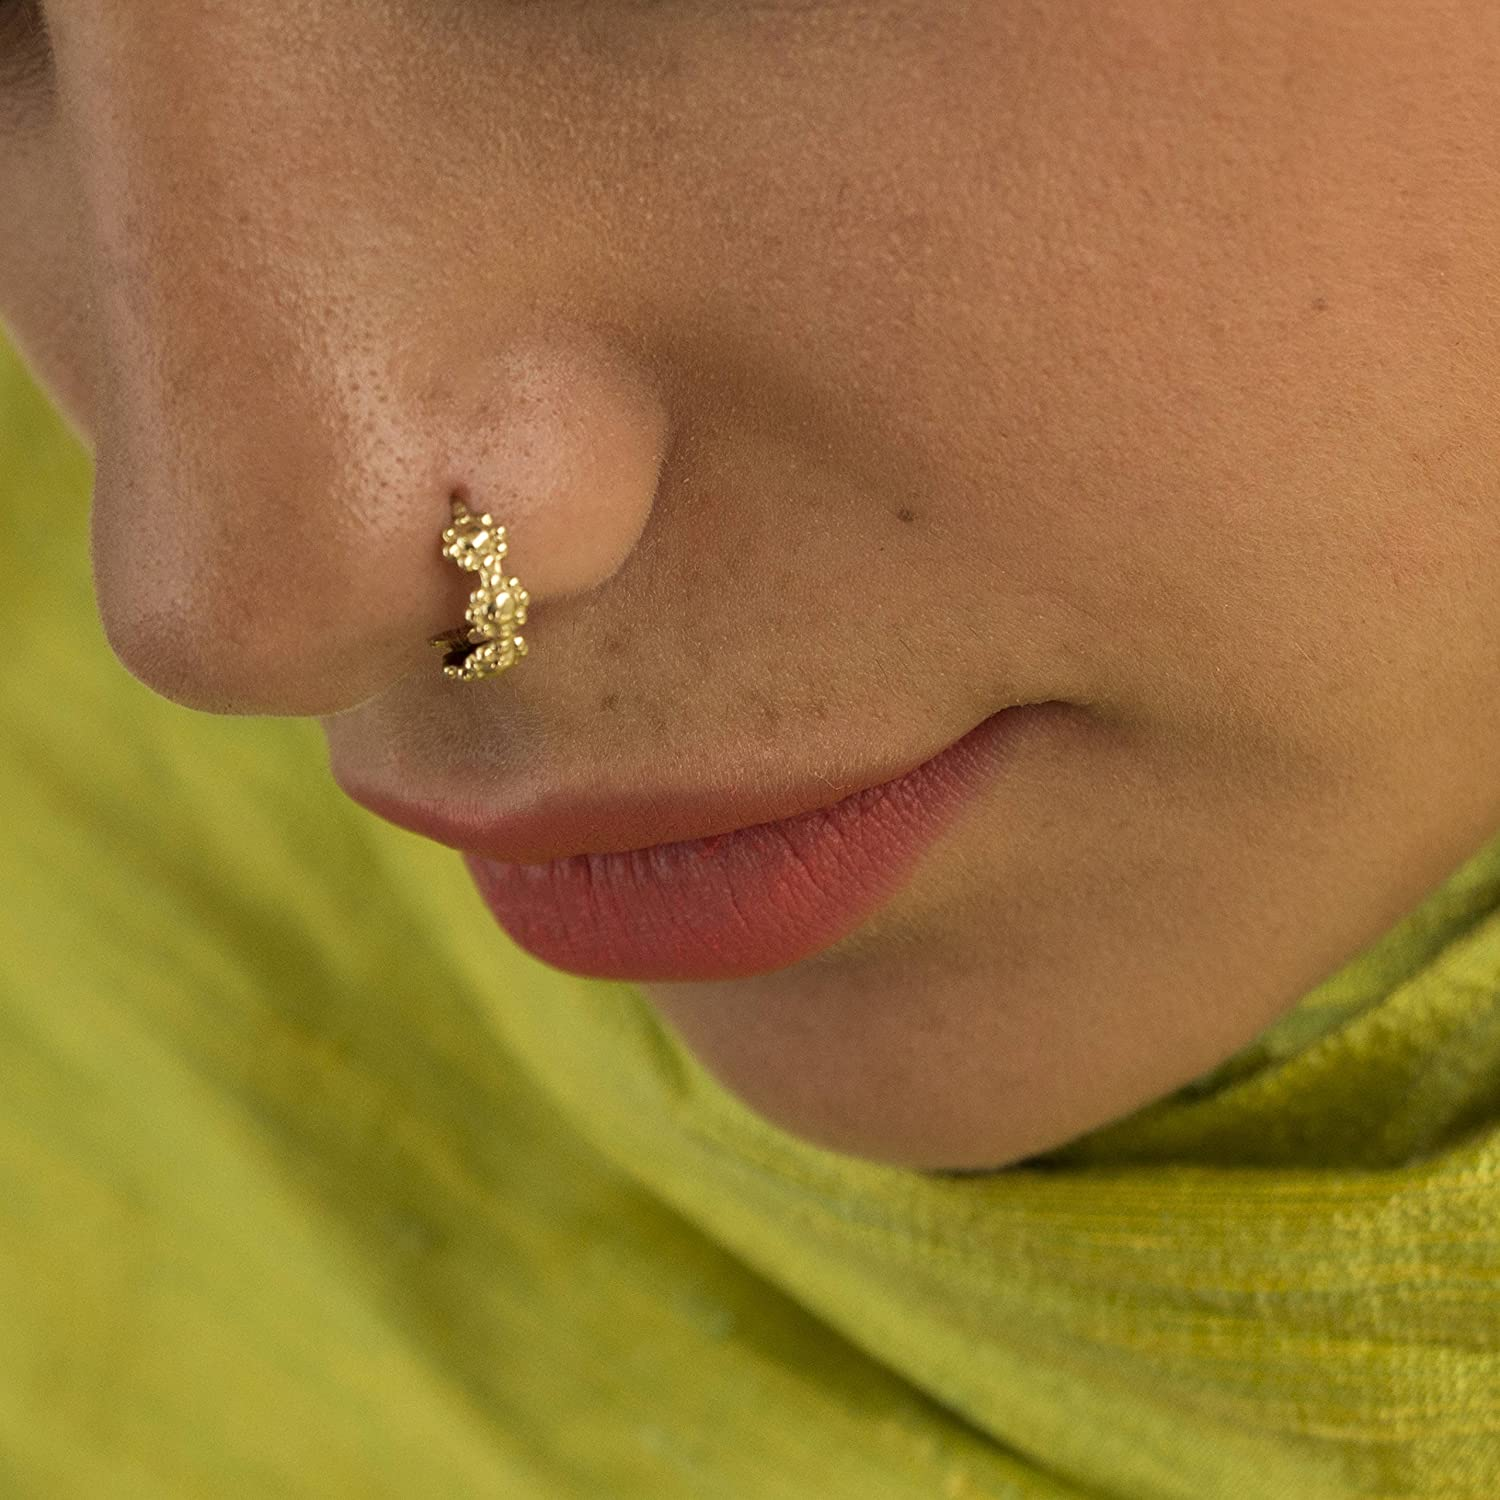 Amazon Com Unique Indian Flowers Nose Ring 18k Gold Plated Hoop Piercing Tribal Style Fits Cartilage Helix Rook Nipple Tragus Earring 20g Handmade Jewelry Handmade